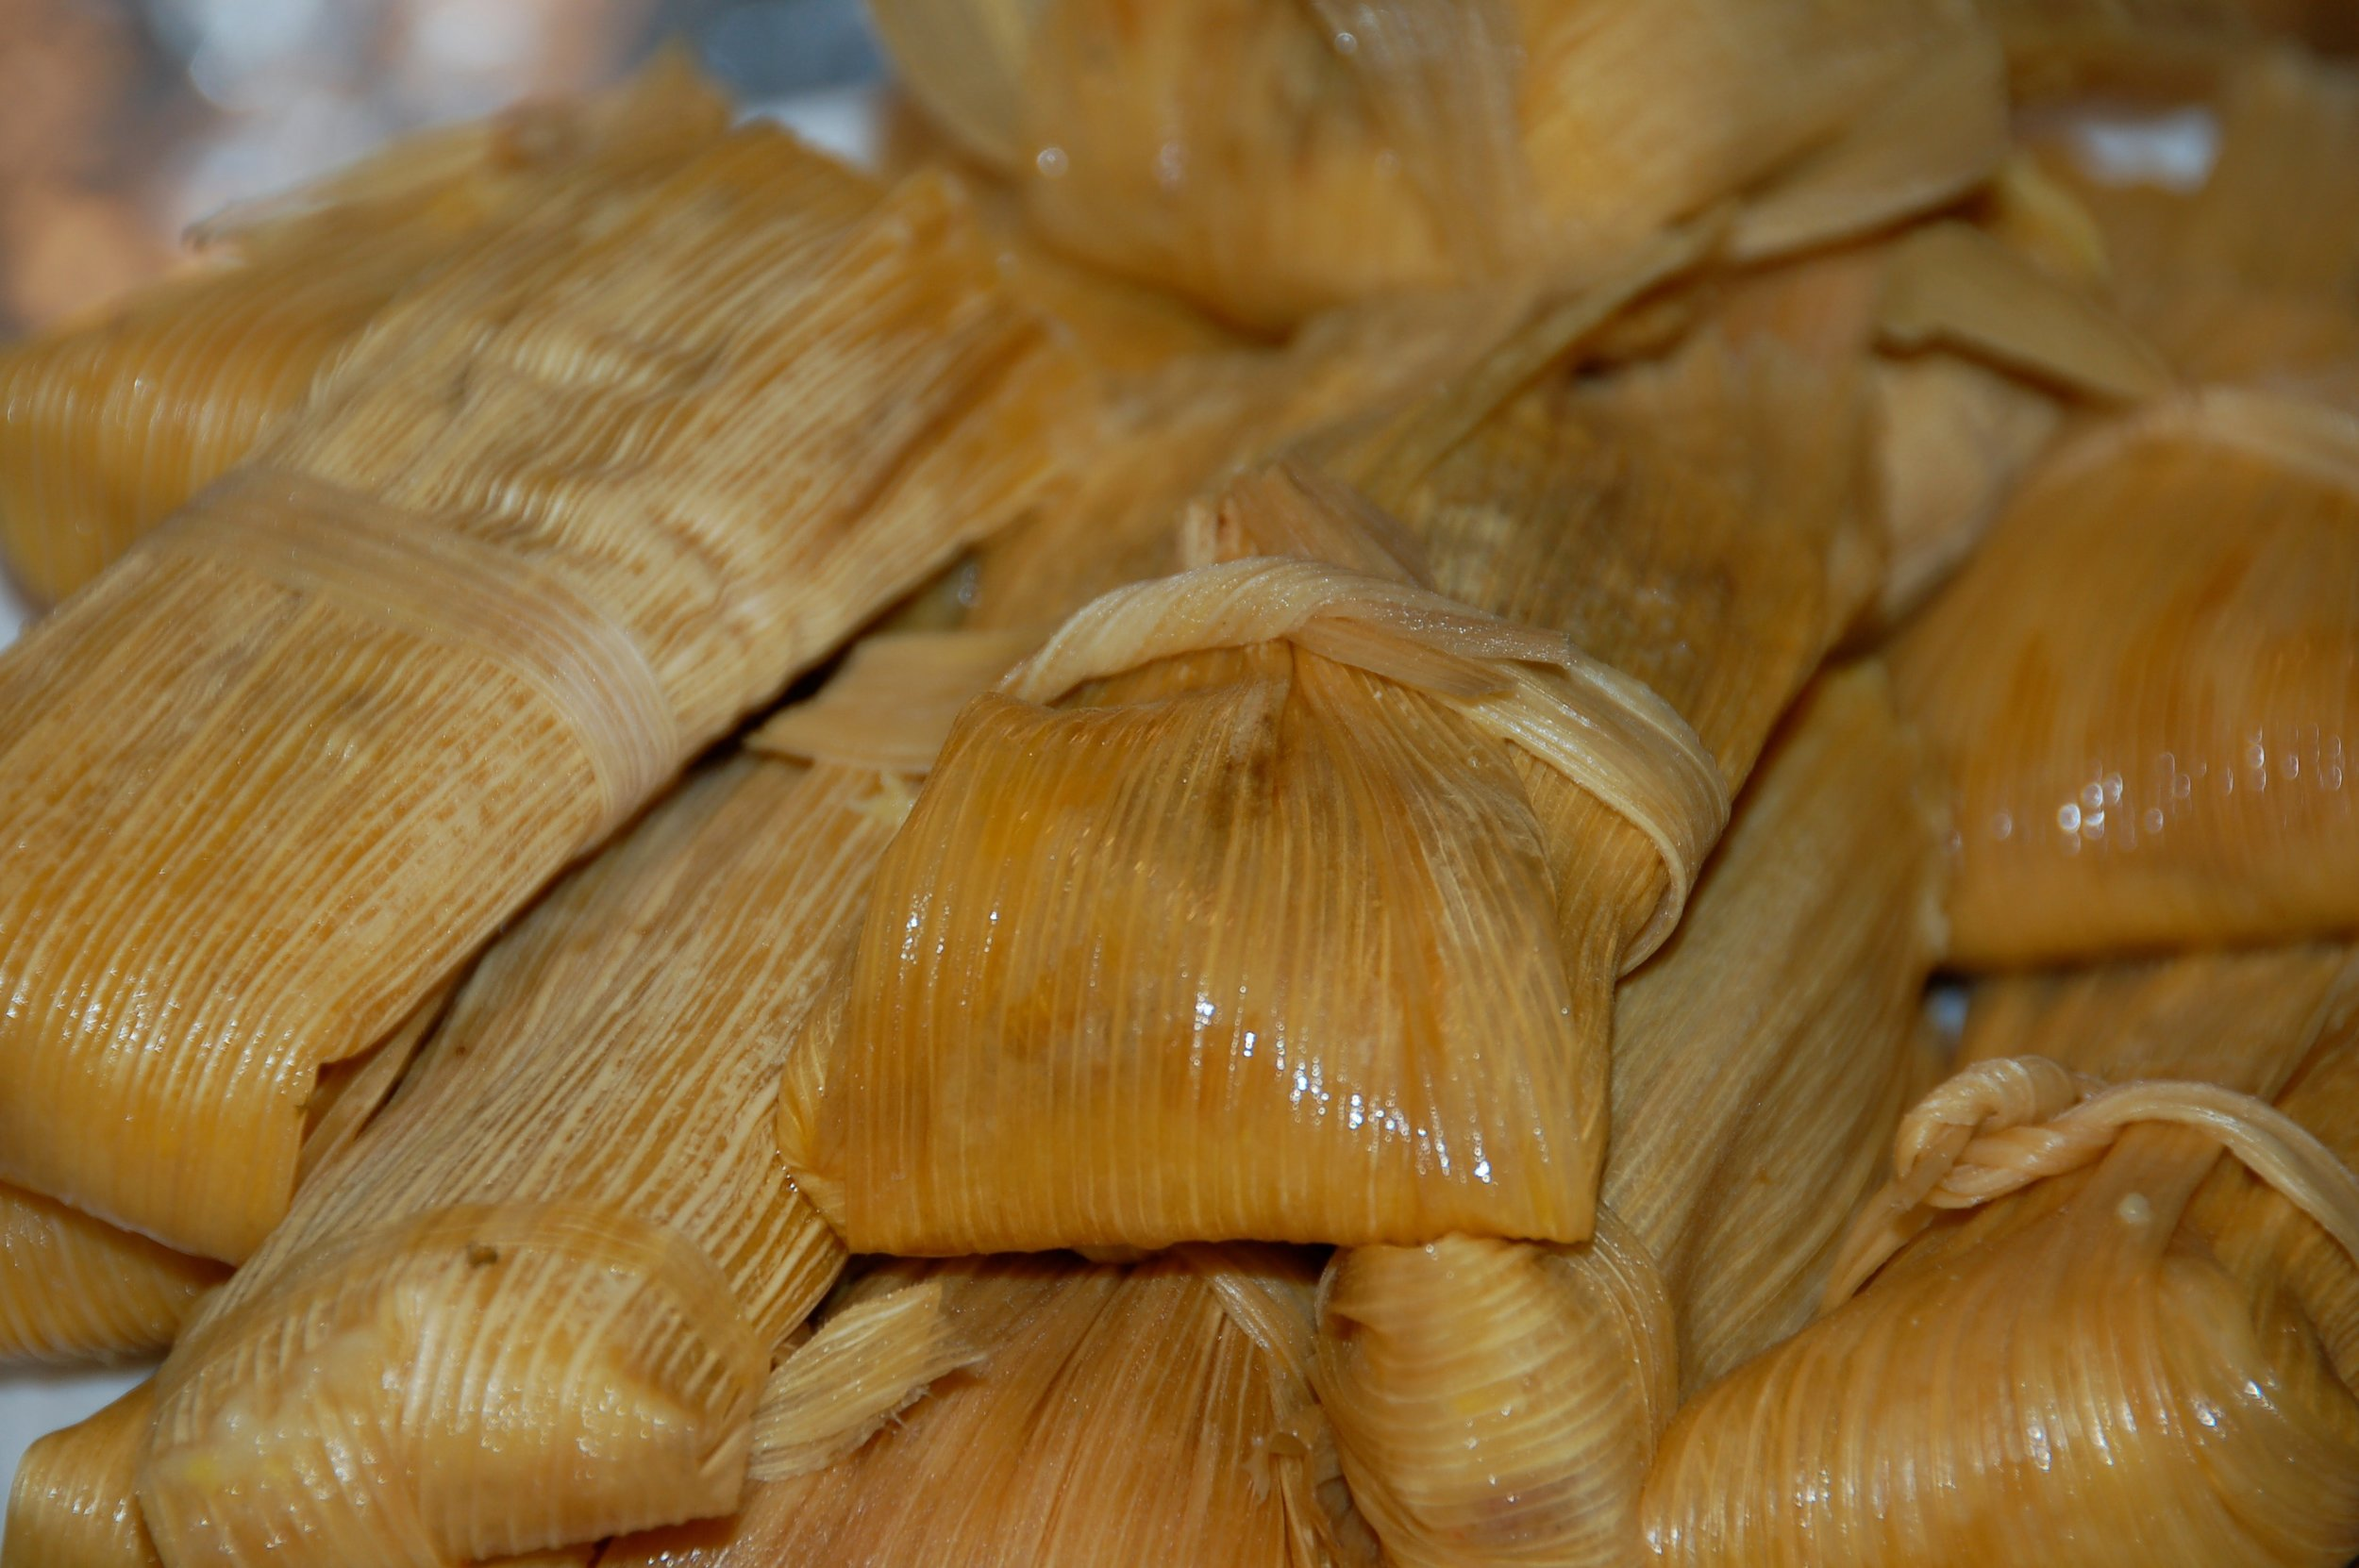 Tamales - Picture taken by Aaron